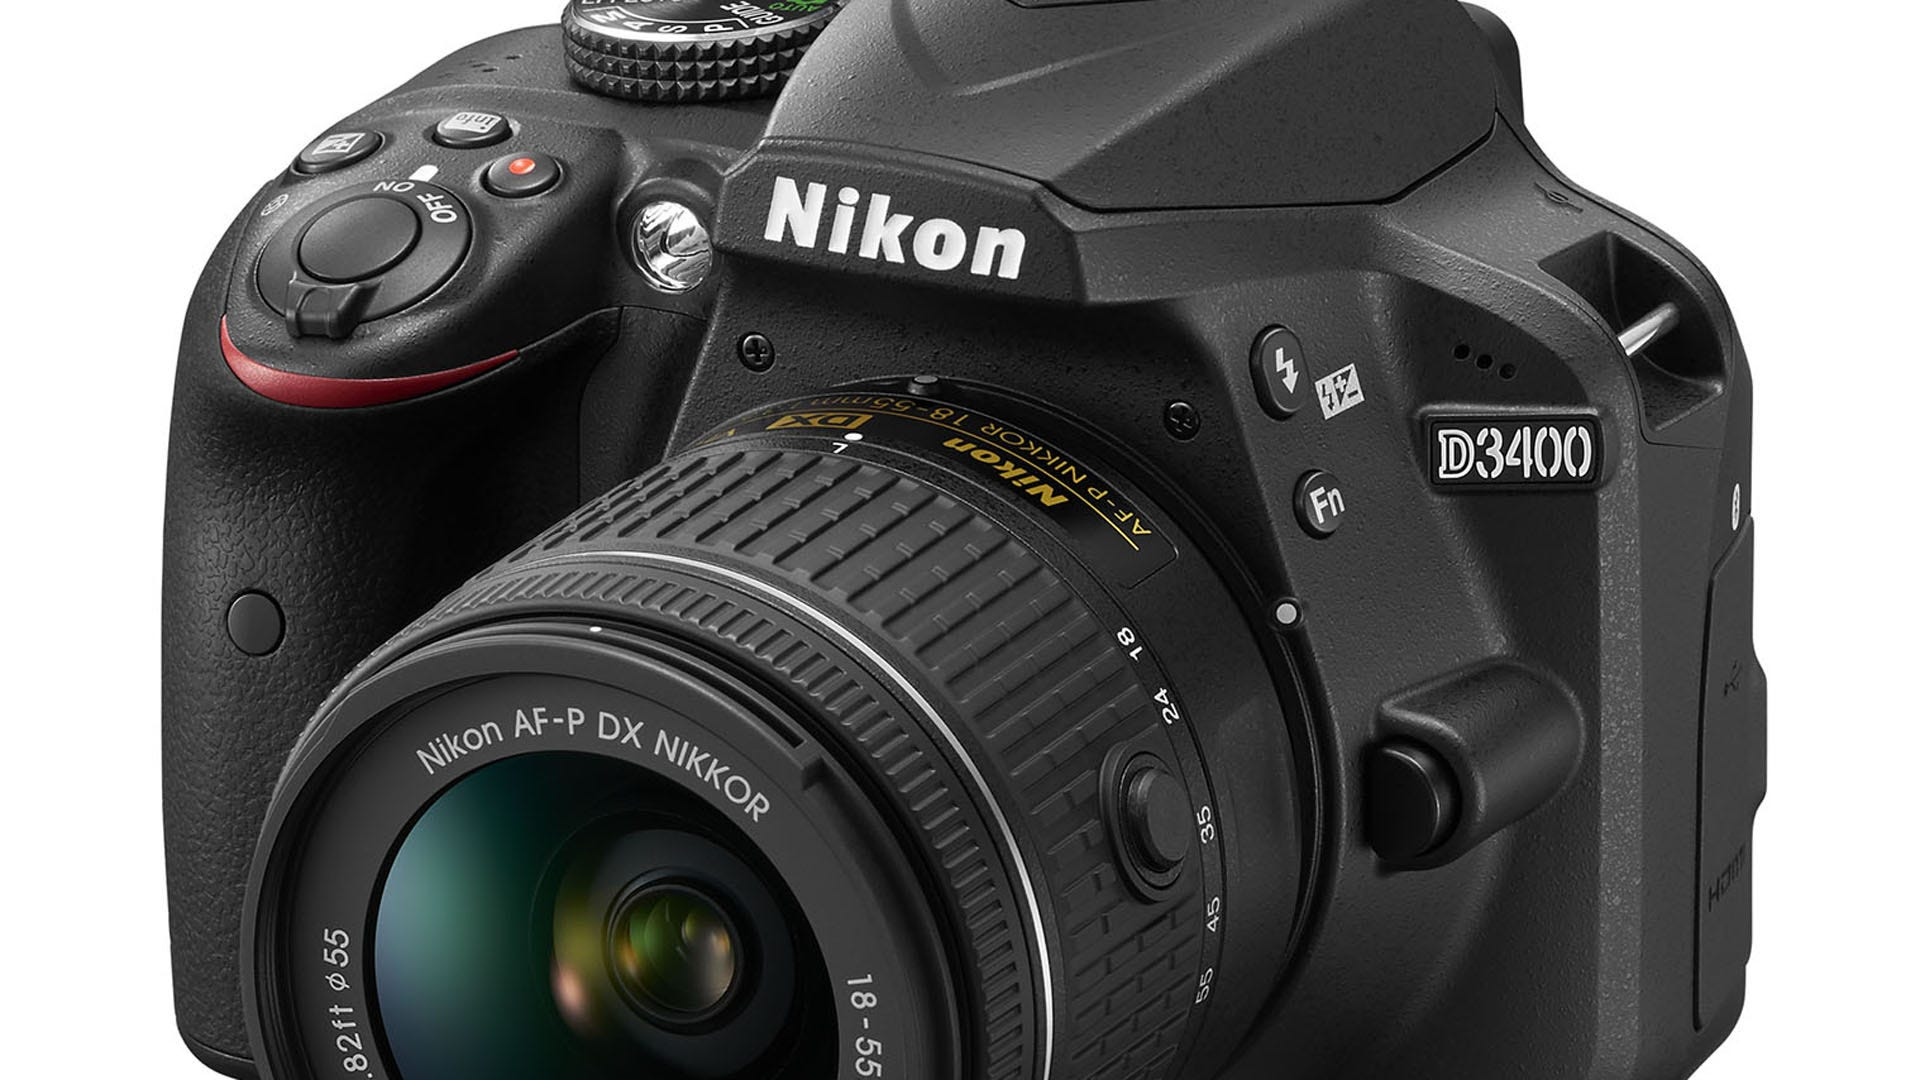 Nikon Releases D3400 and new NIKKOR Lenses with Vibration Reduction  sc 1 st  Adorama & Nikon Releases D3400 and new NIKKOR Lenses with Vibration ... azcodes.com